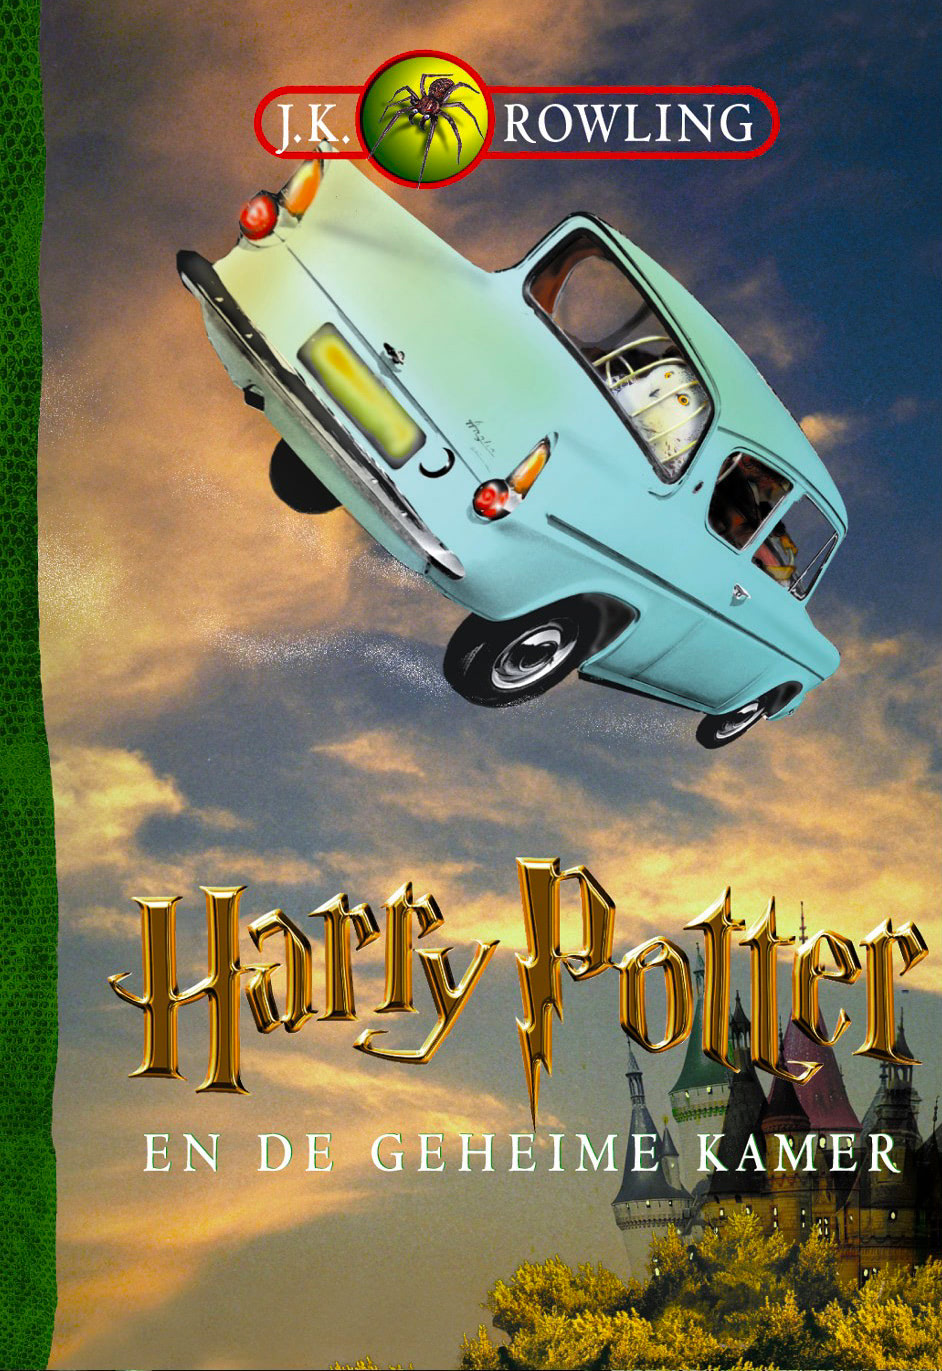 'Chamber of Secrets' Dutch edition